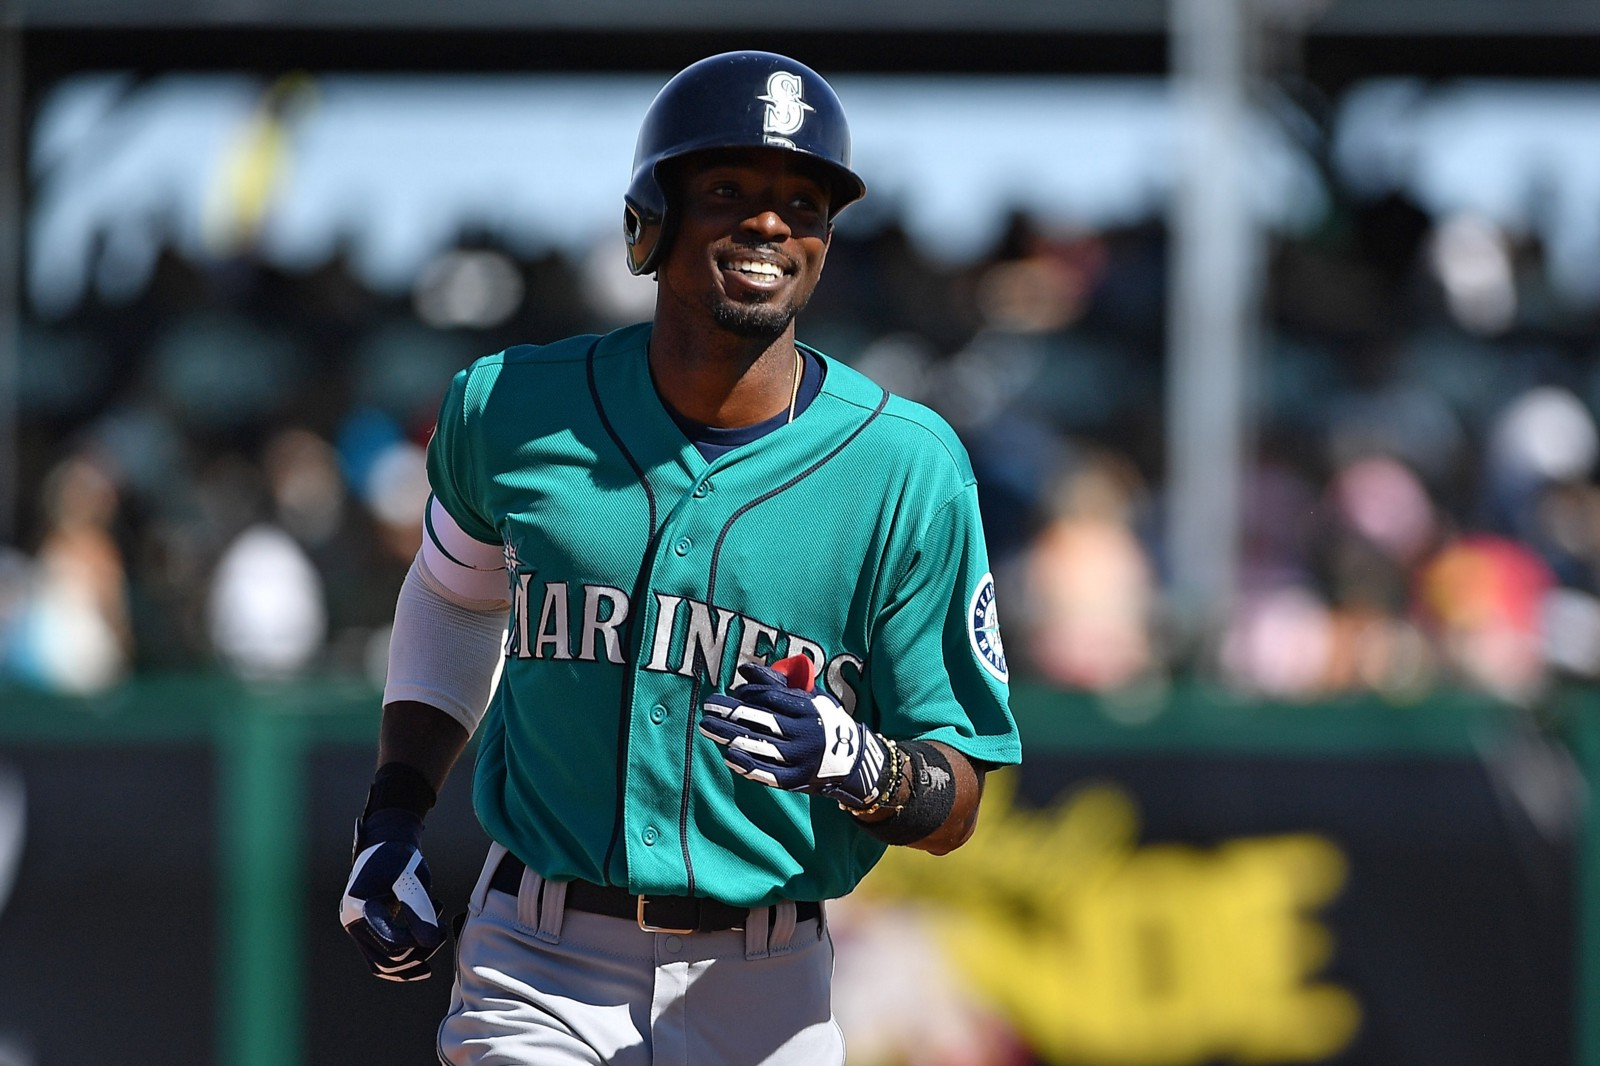 Mariners Spring Training — Day 24